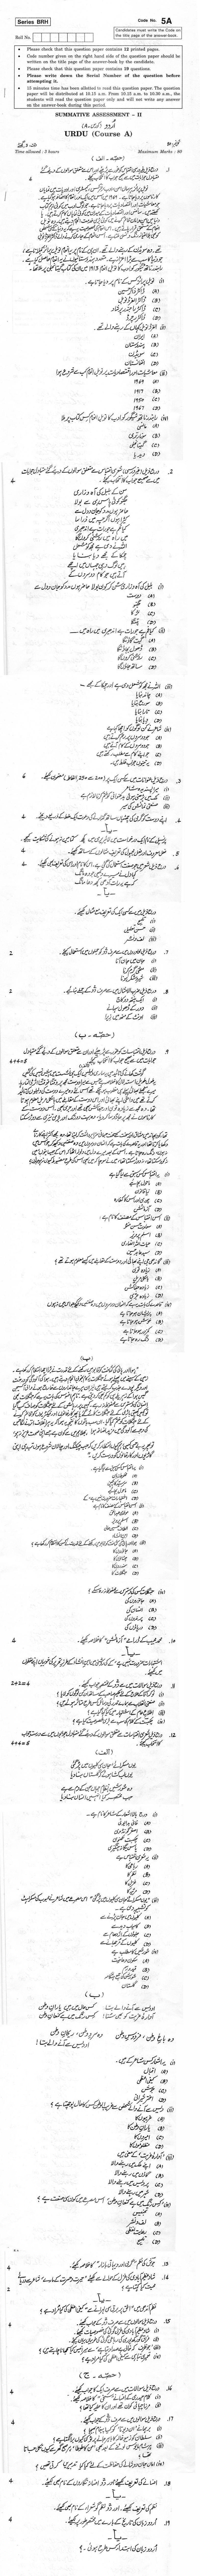 CBSE Class X Previous Year Question Papers 2012 Urdu (Course B)